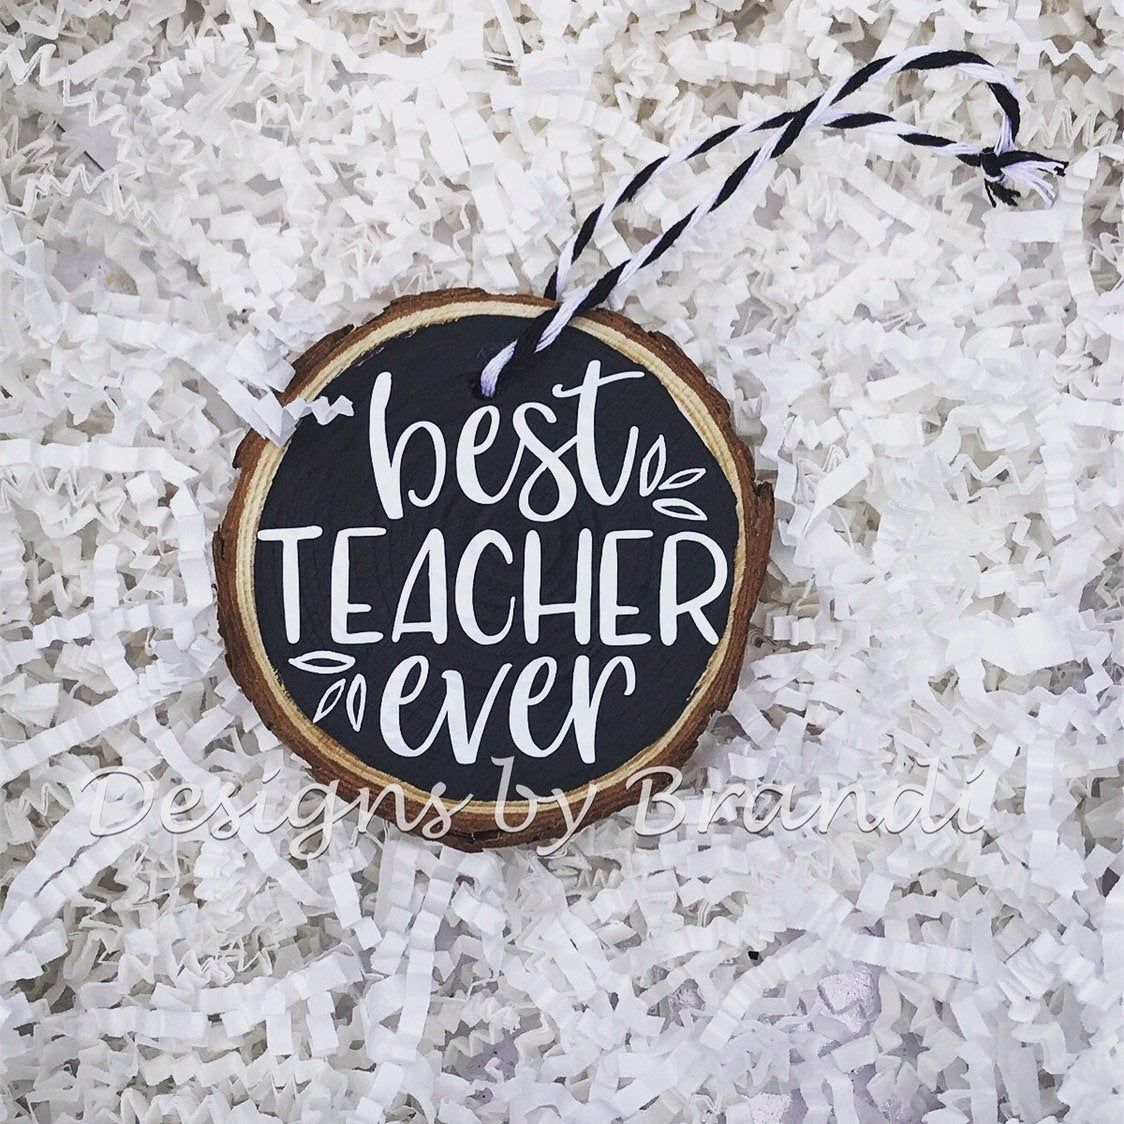 Best Teacher Ever Christmas Ornaments / Teacher Ornaments / Teacher gifts / Rustic Ornaments / Farmhouse ornaments / Wood Slice Ornament